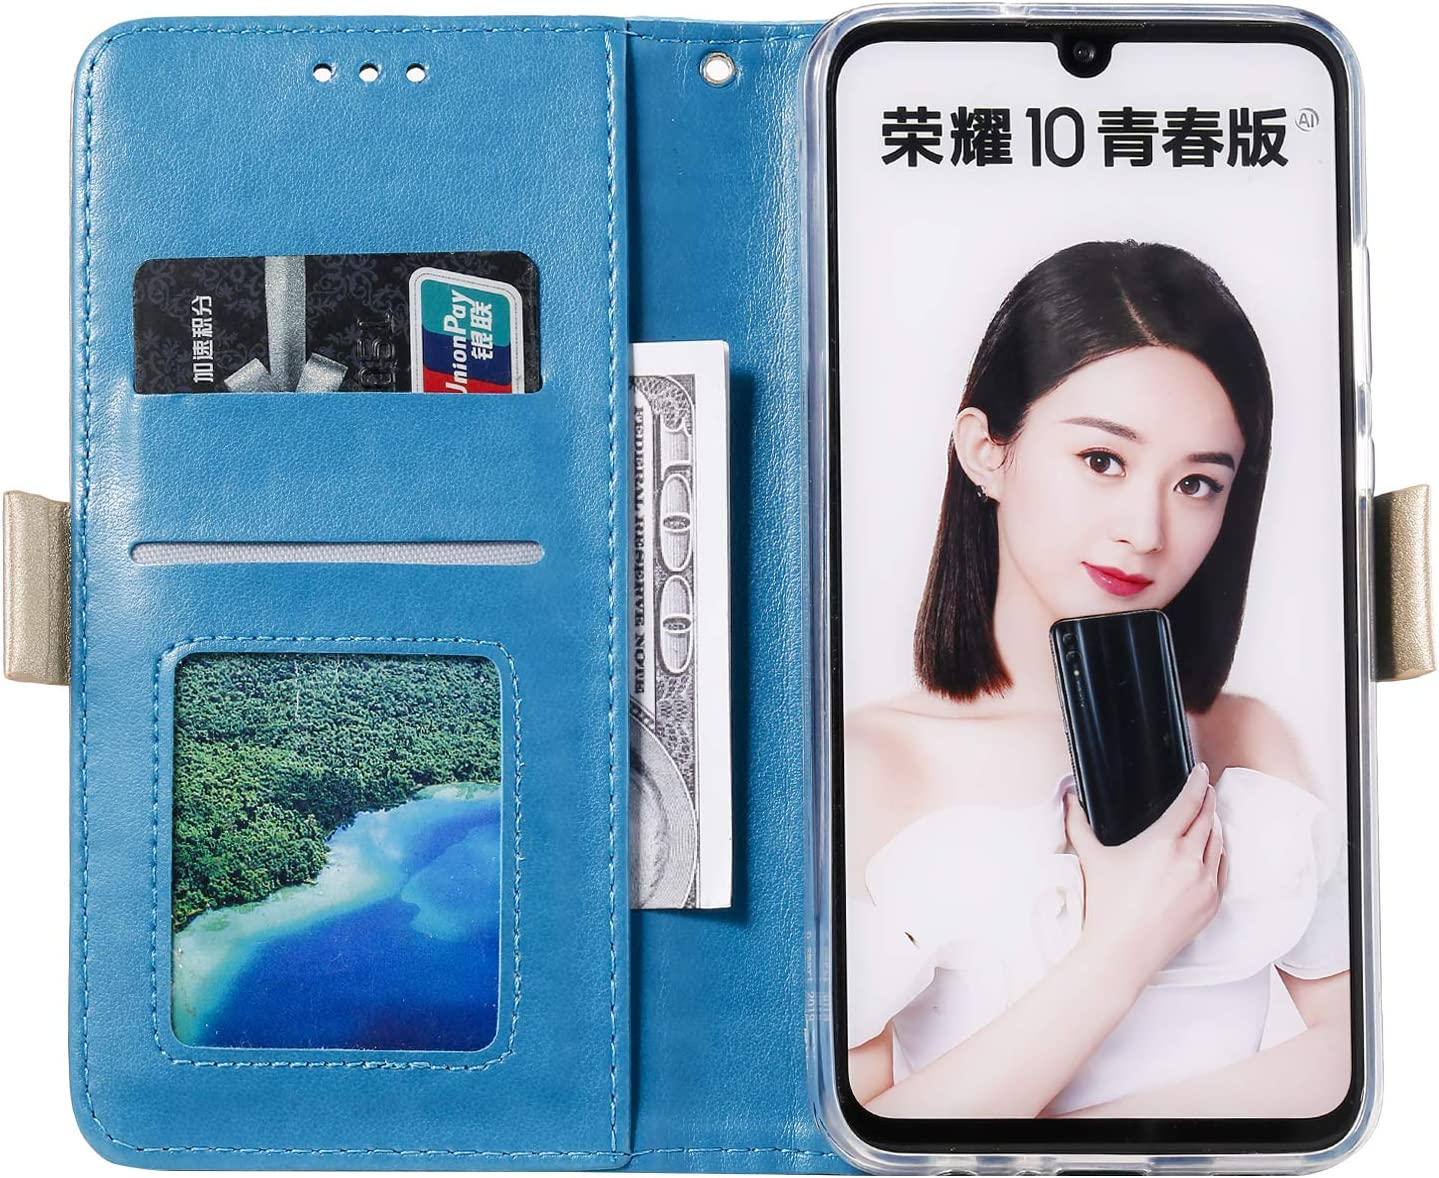 Shockproof Flip Case Cover for Huawei Honor10 Lite Lomogo Leather Wallet Case for Huawei P Smart 2019//Honor 10 Lite with Stand Feature Card Holder Magnetic Closure LOHHA120253 Green